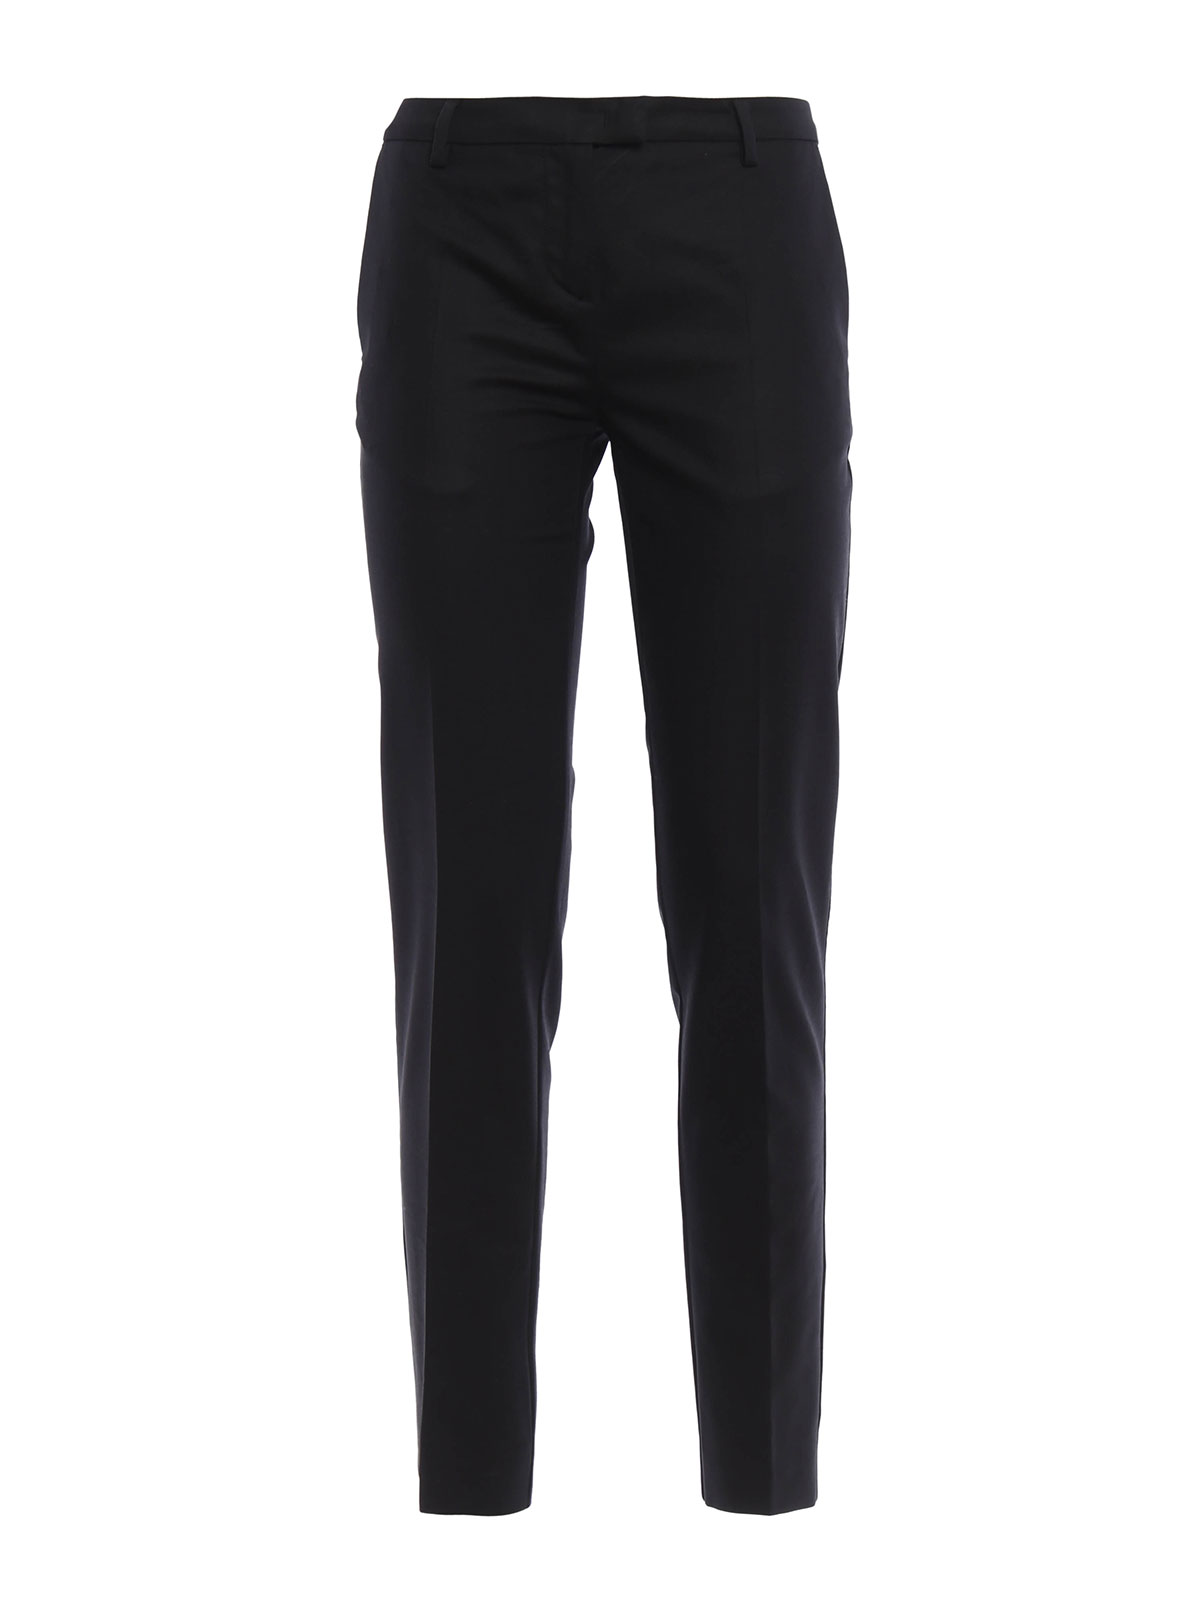 Cotton tailored trousers by Moncler